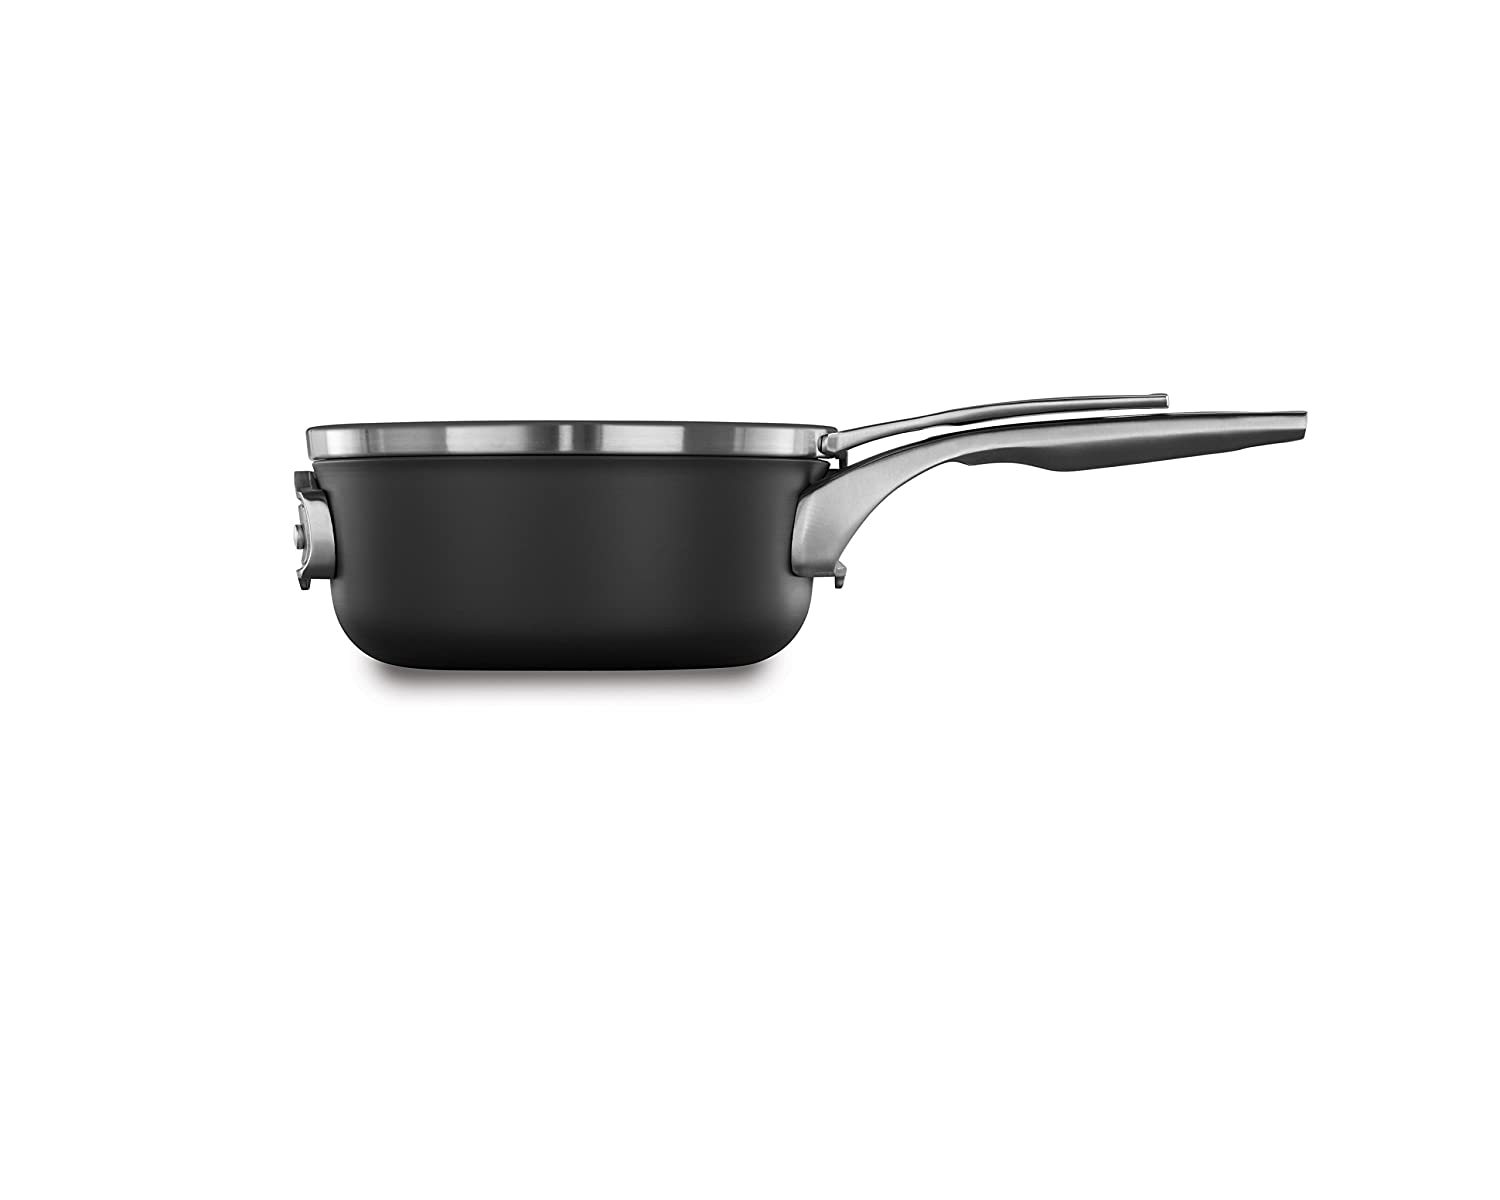 Calphalon Premier Space Saving Nonstick 2.5qt Sauce Pan with Cover